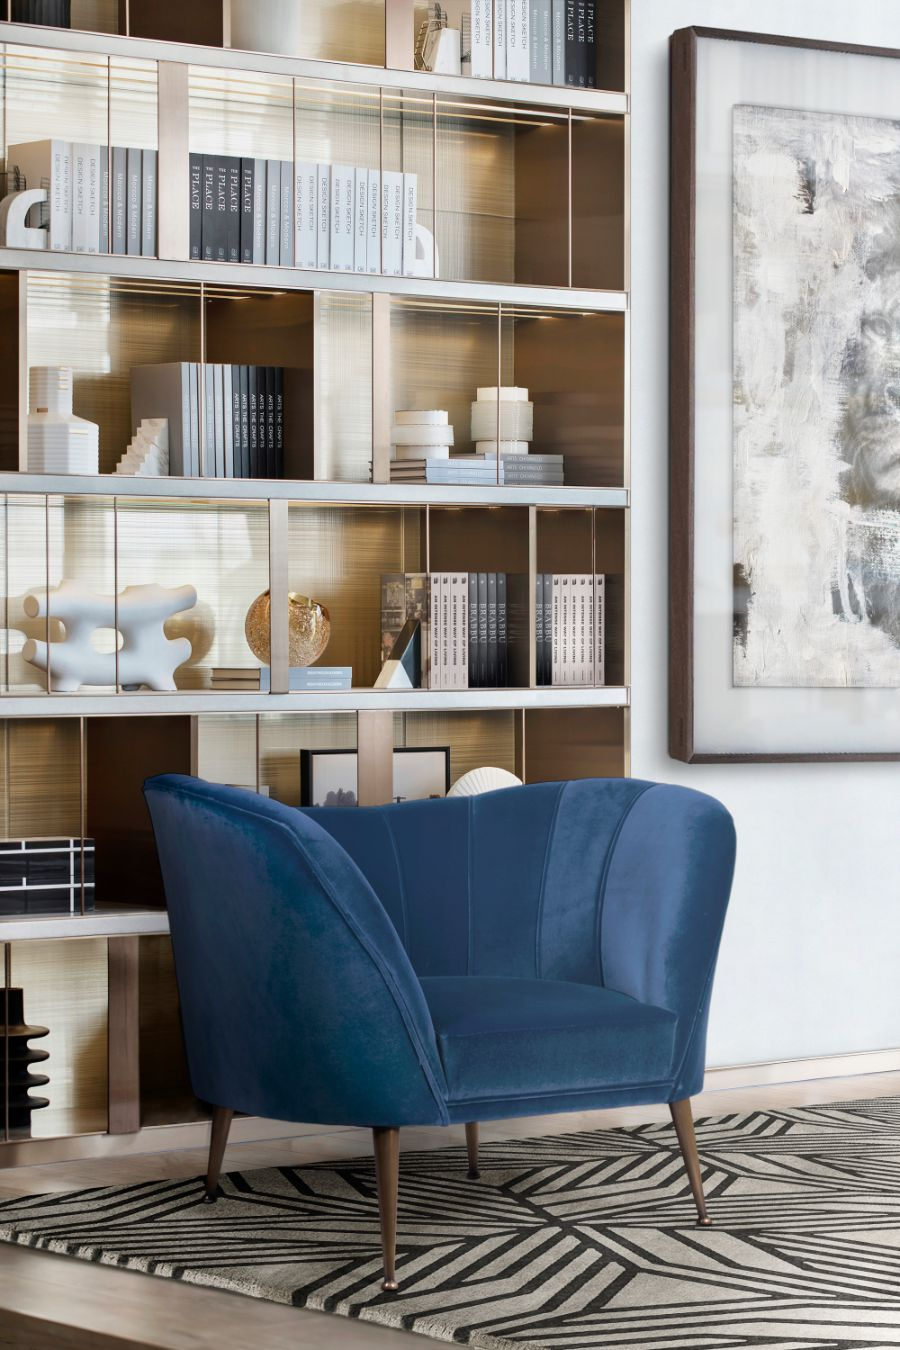 20 Armchairs to Bring The Ultimate Intense Style into Your Home armchairs 23 Armchairs to Bring The Ultimate Intense Style into Your Home Modern Designed Armchairs Top 20 of Timeless Designs for Every Decor 10